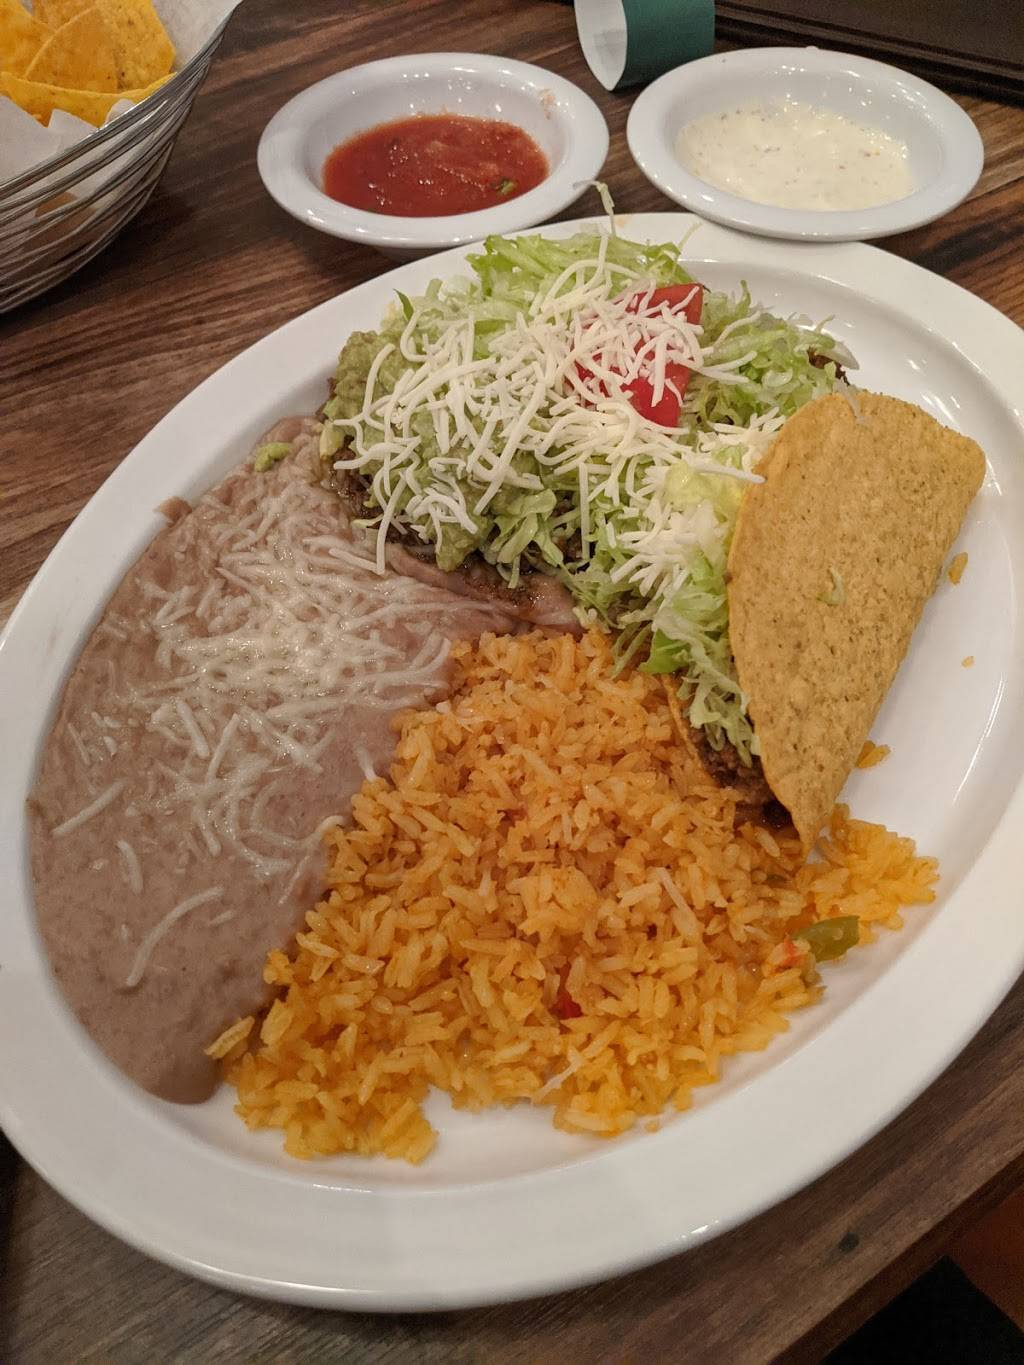 Cozumel Mexican Grill | restaurant | 940 Hansen Rd suite b, Green Bay, WI 54304, USA | 9204014007 OR +1 920-401-4007